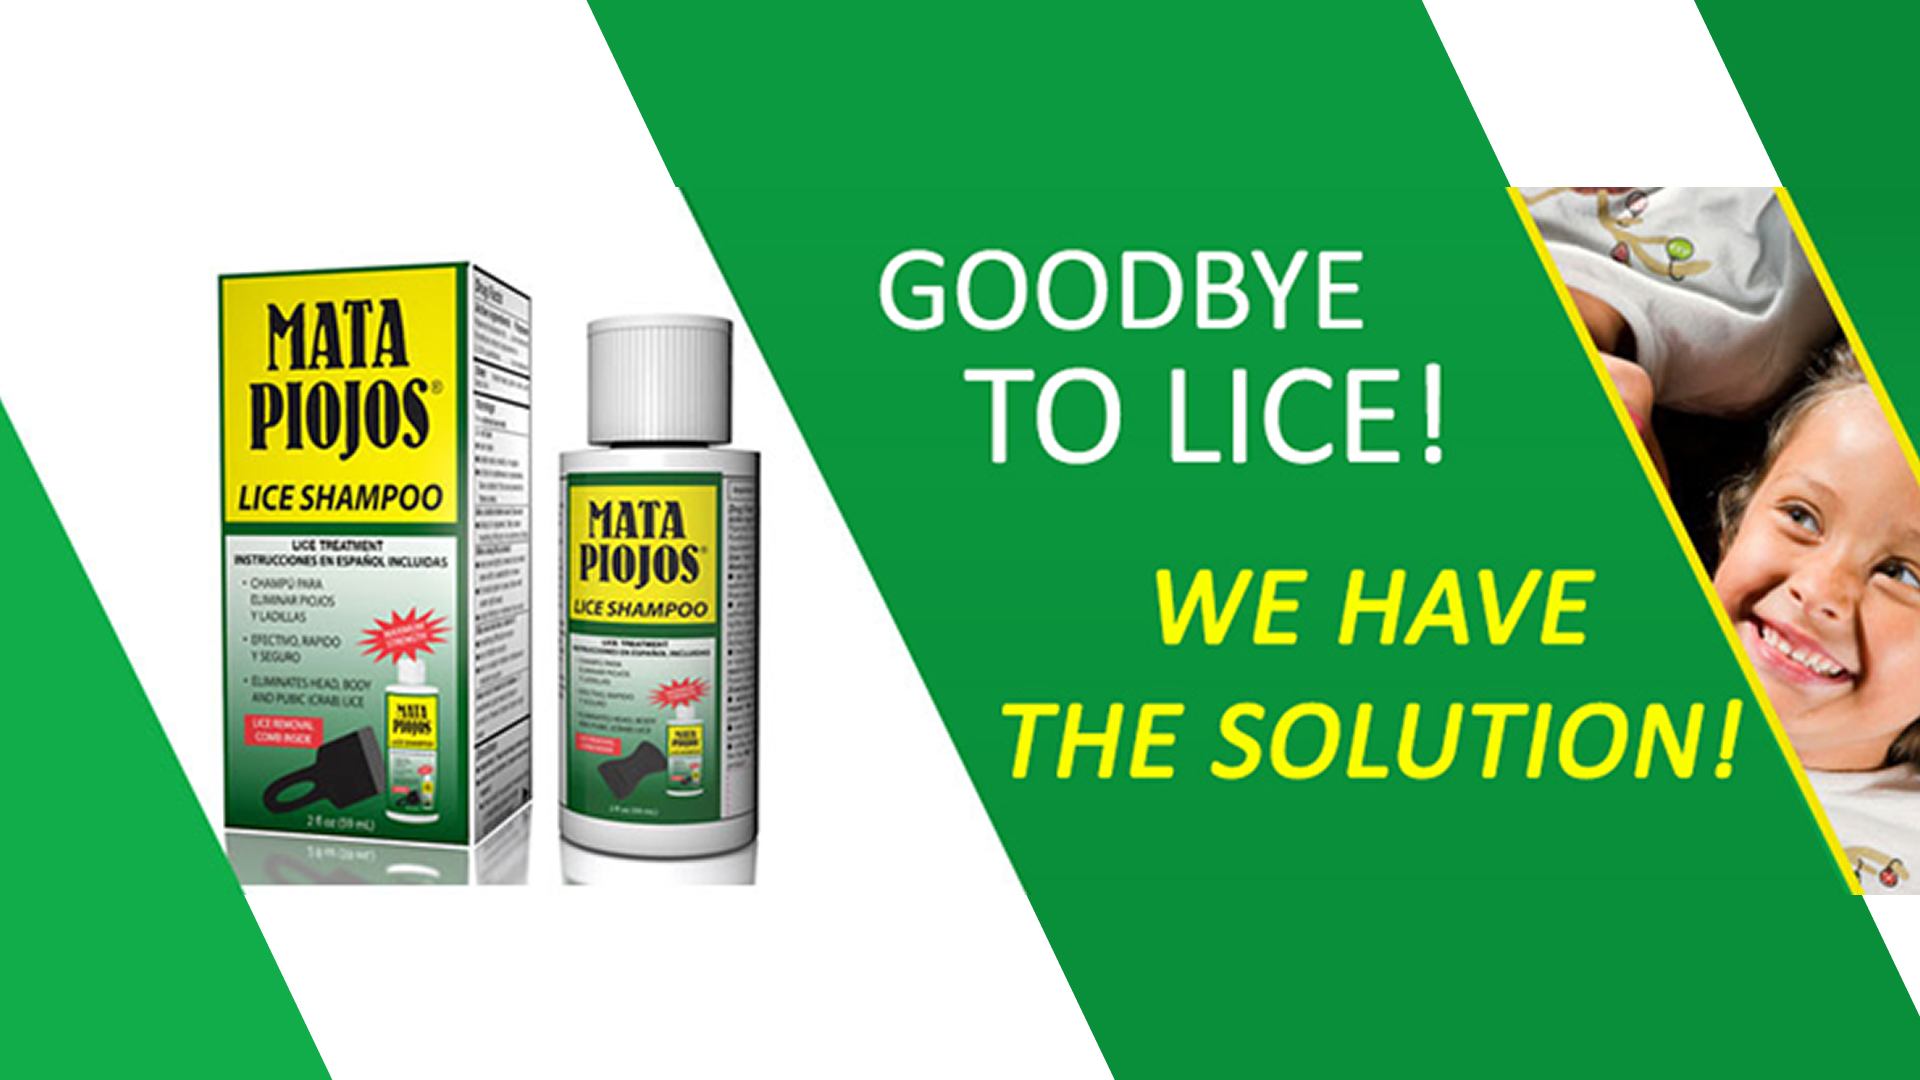 Good Bye to Lice